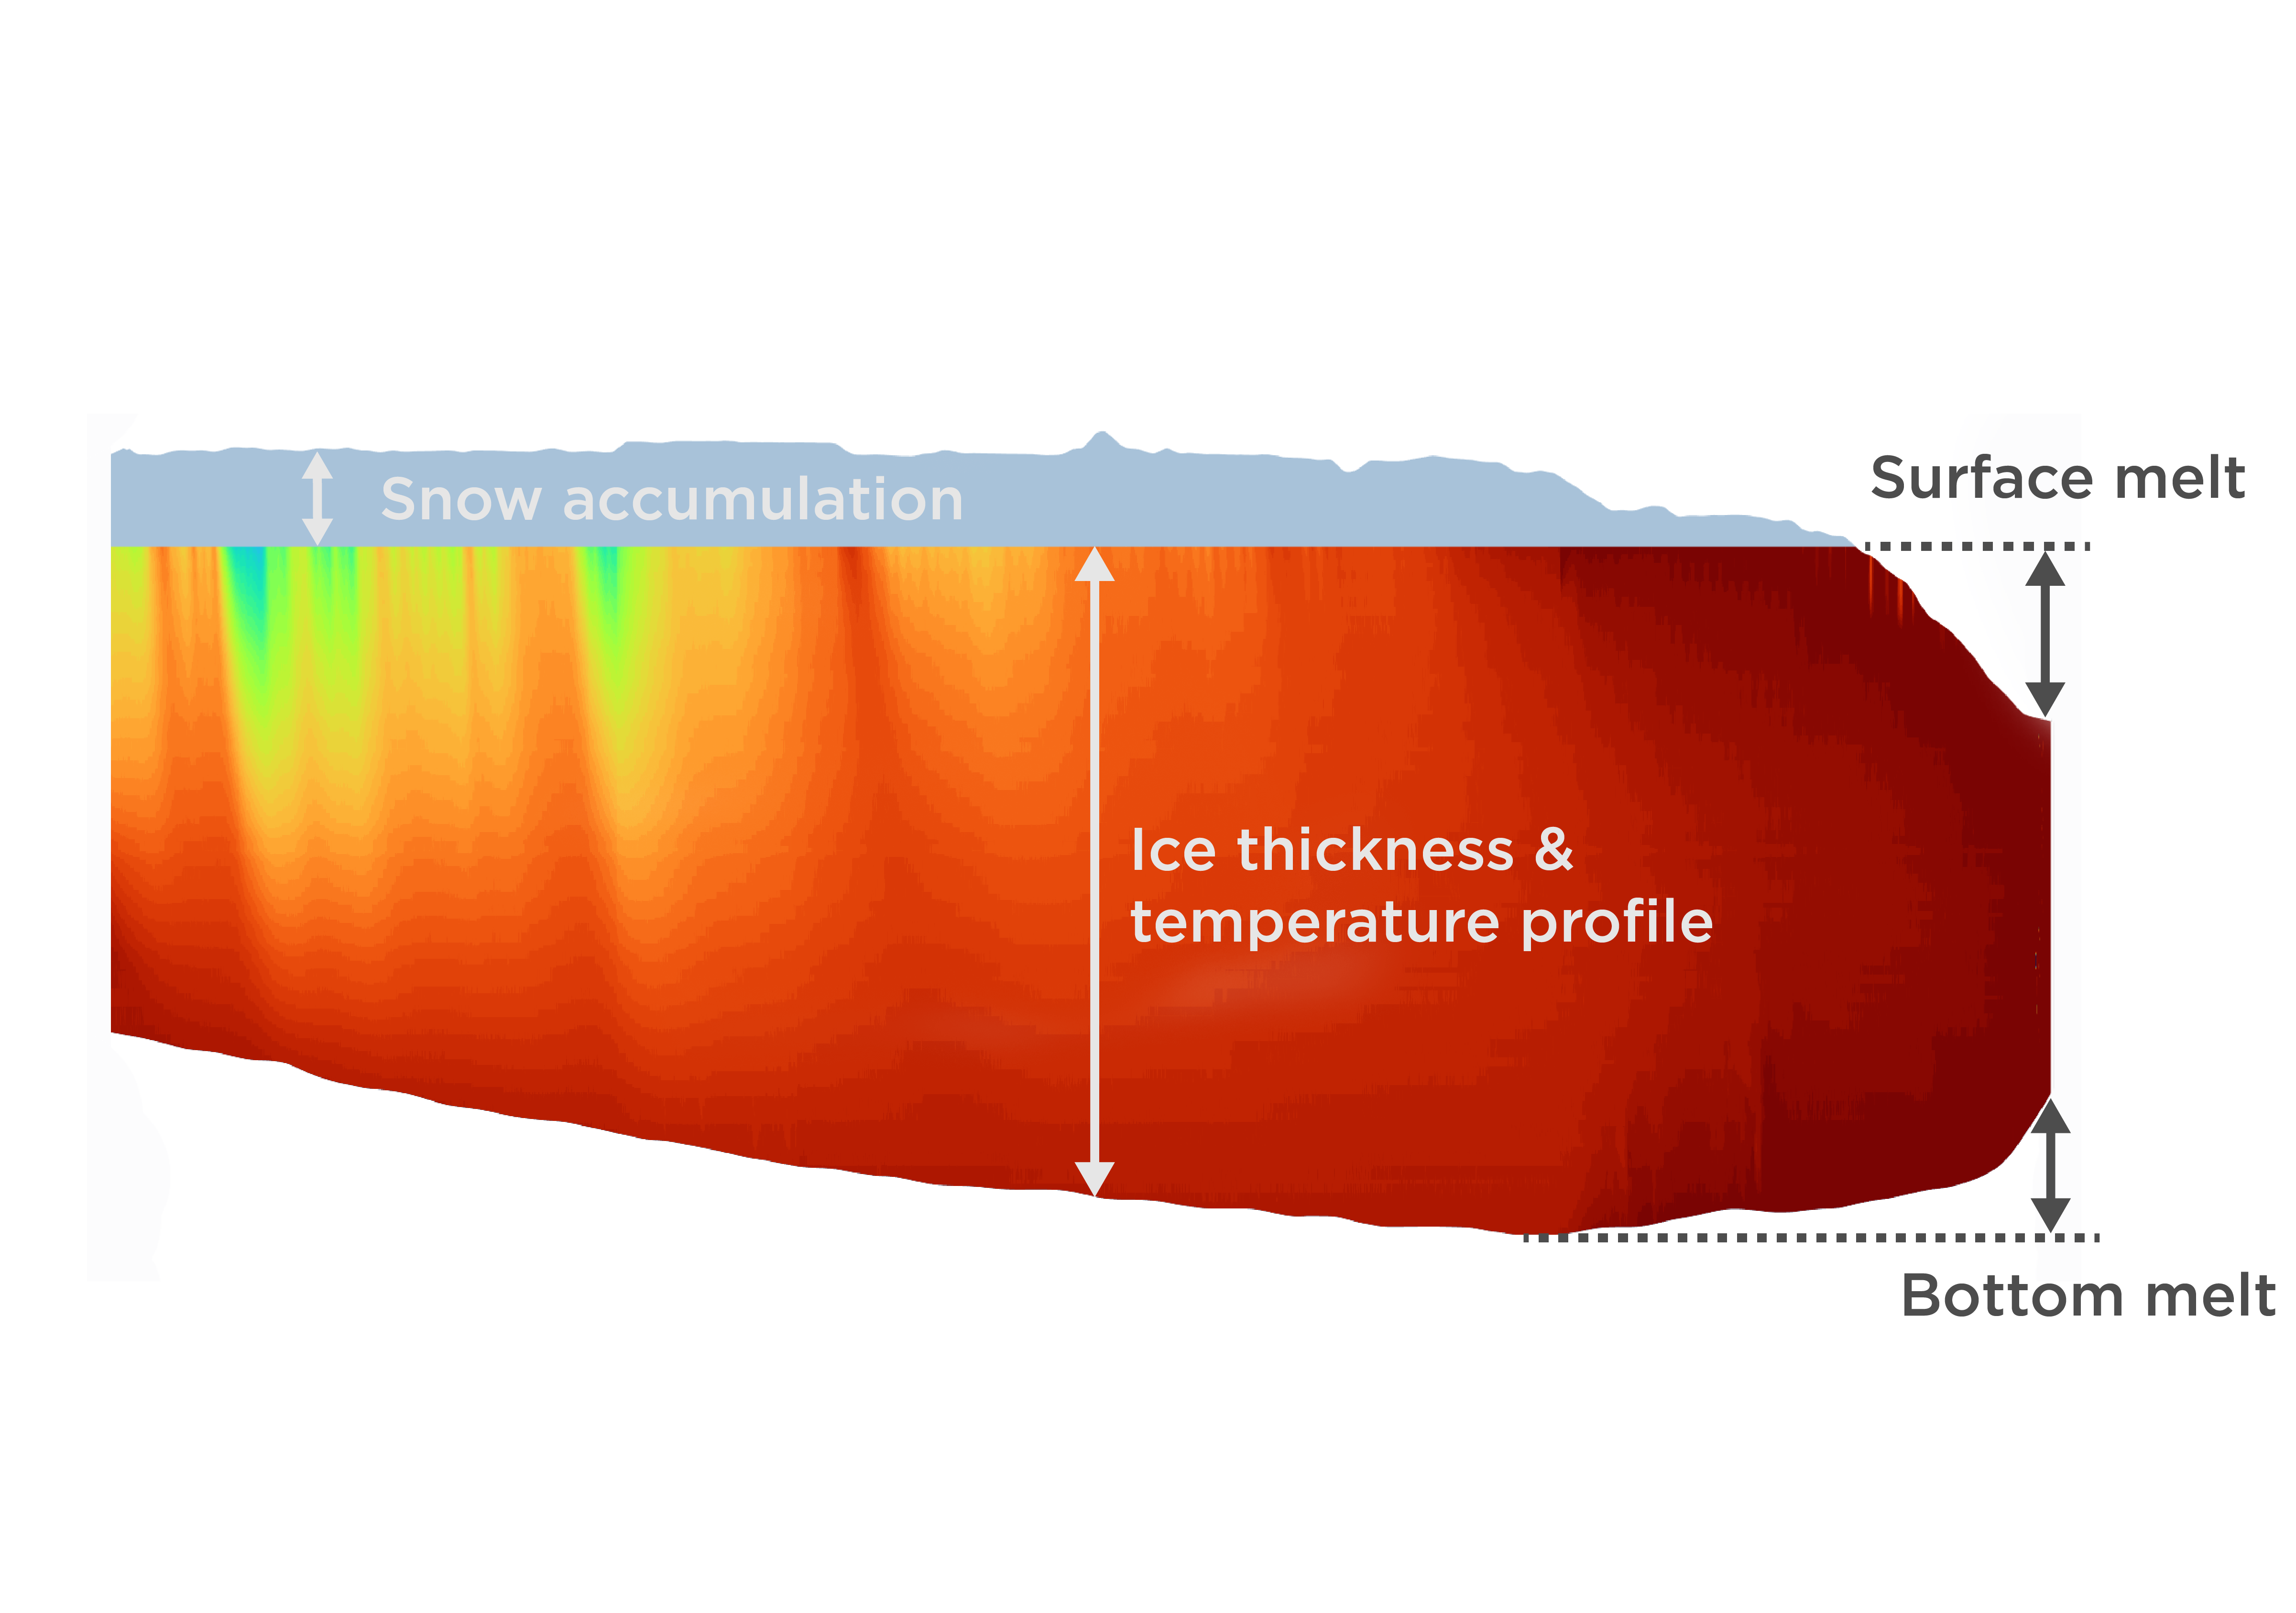 Ice mass balance plot showing snow accumulation, thickness, growth, and melt